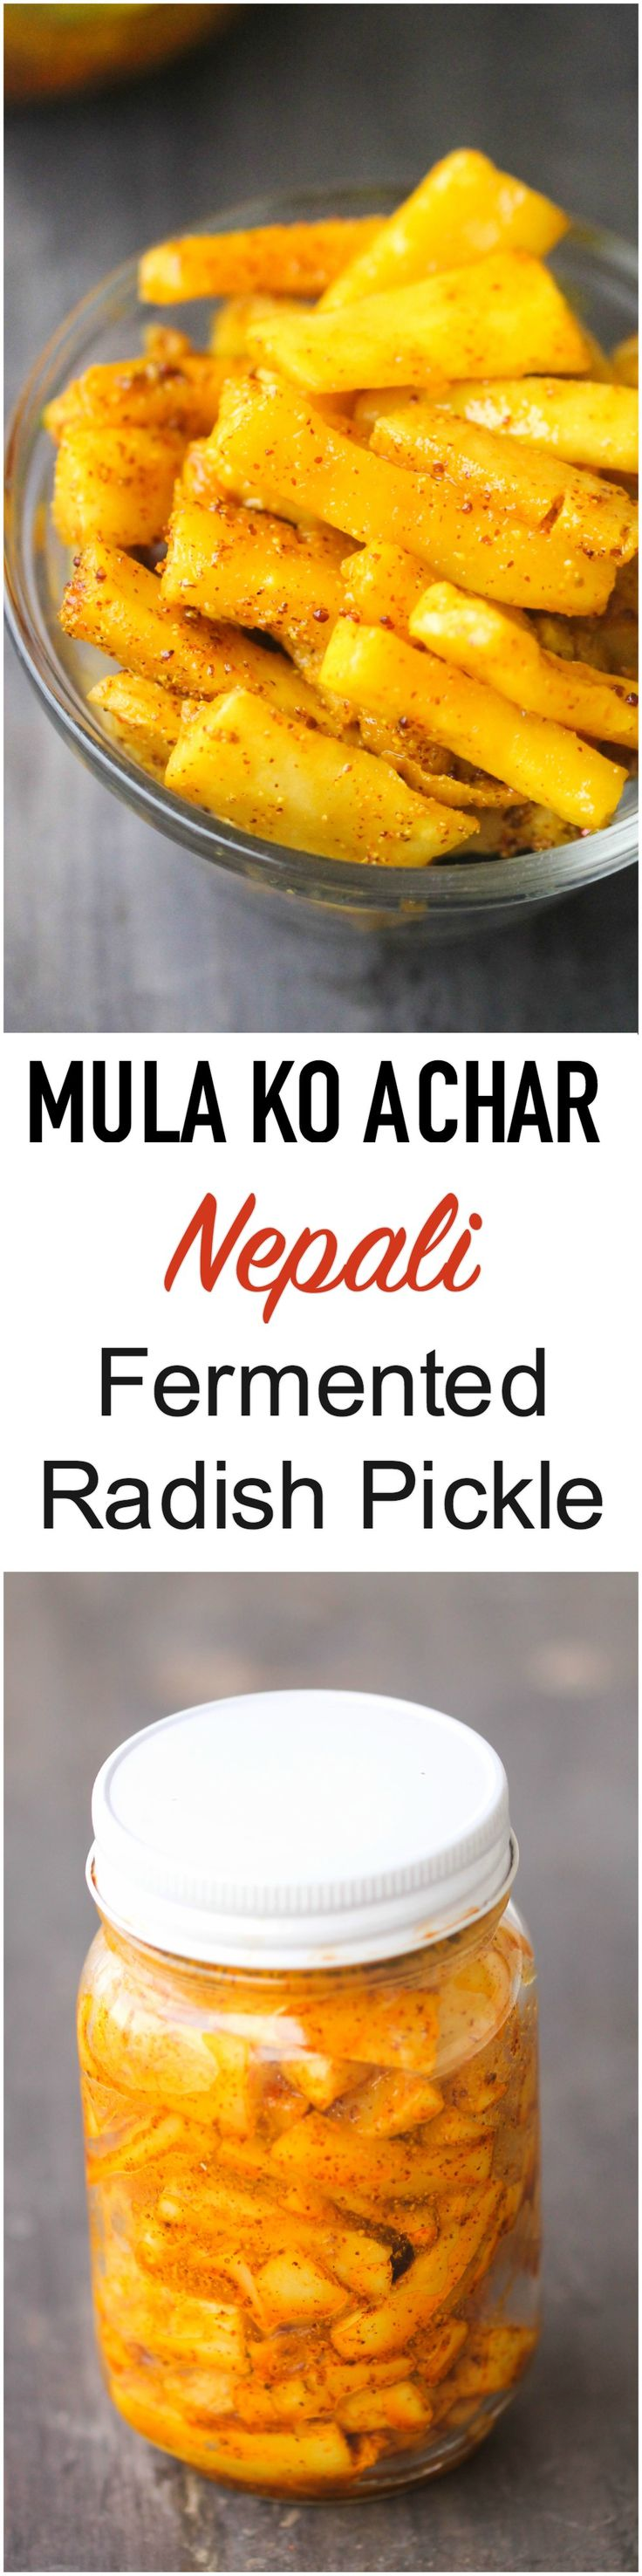 Mula Ko Achar (Nepali Fermented Radish Pickle) is sour, delicious side dish full of probiotics!